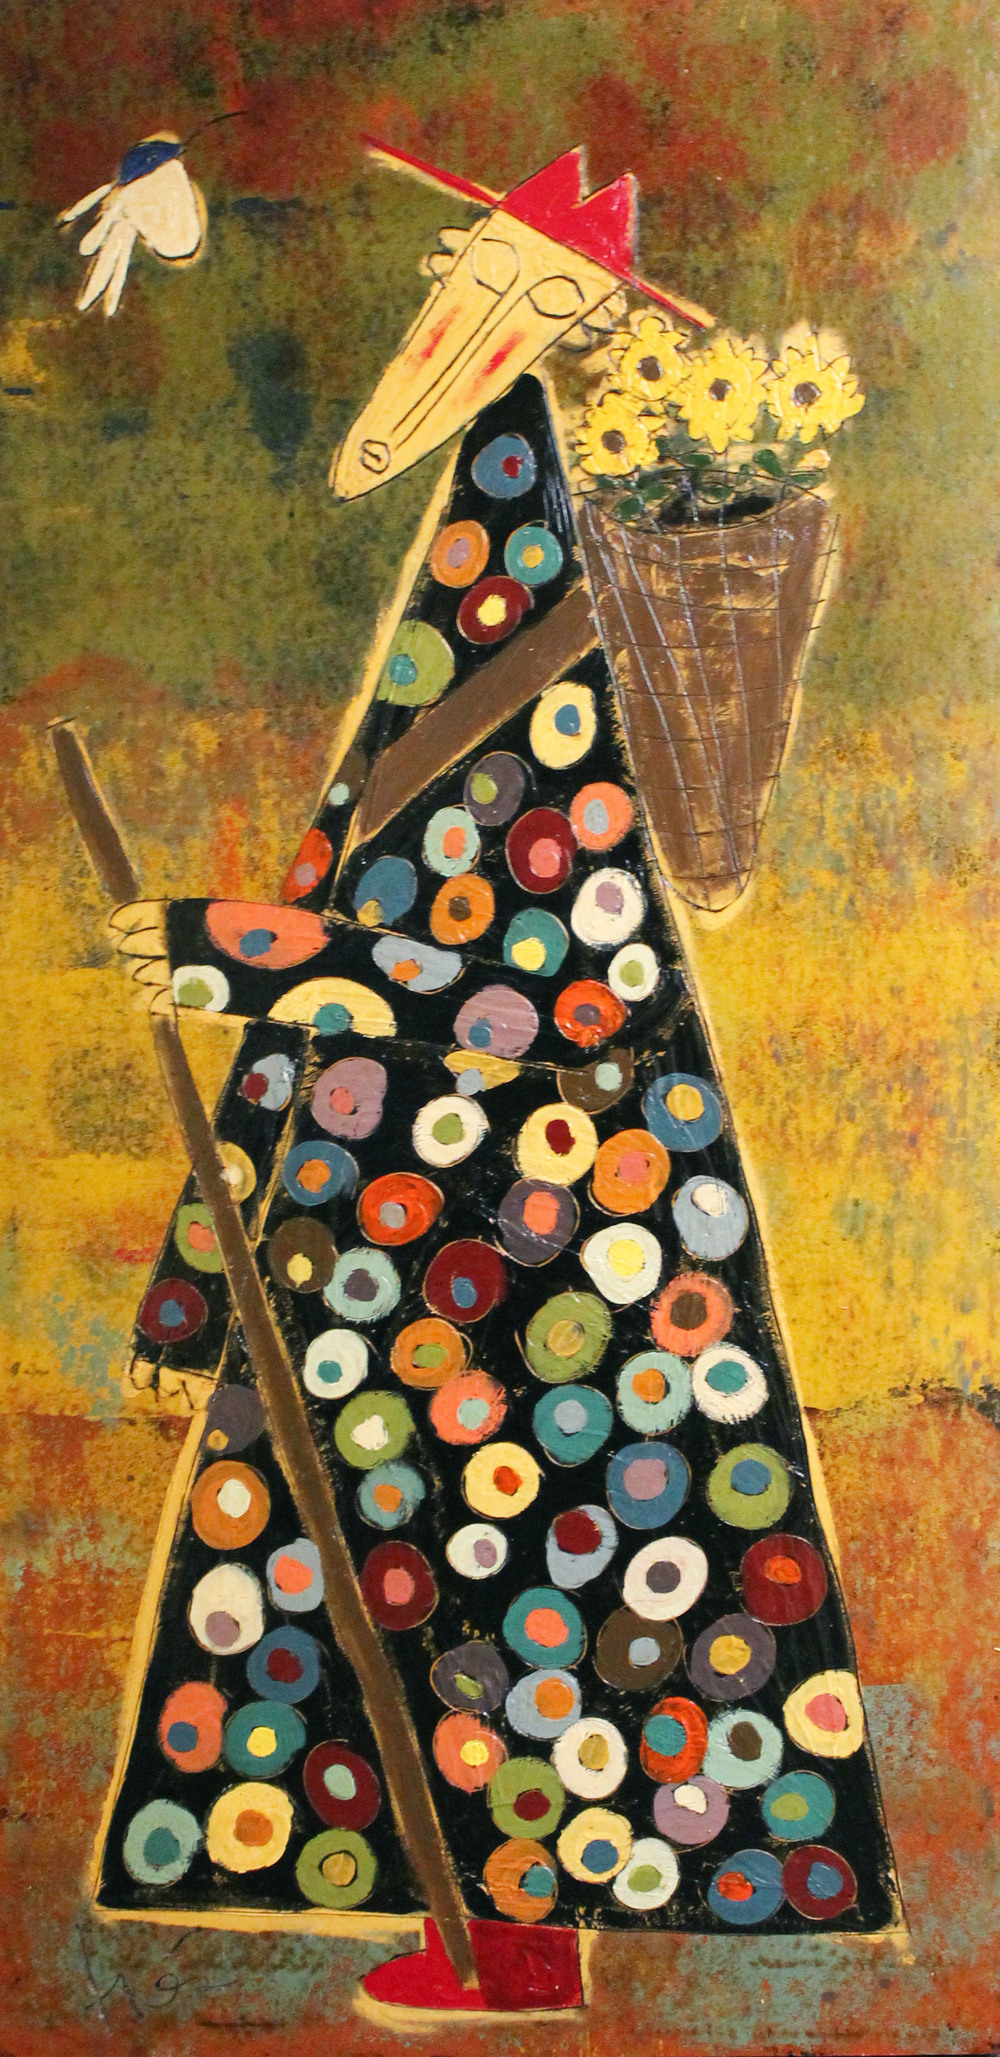 Traveling Monk with FlowersTres Taylor Paint on Tar Paper 72x36in.jpg